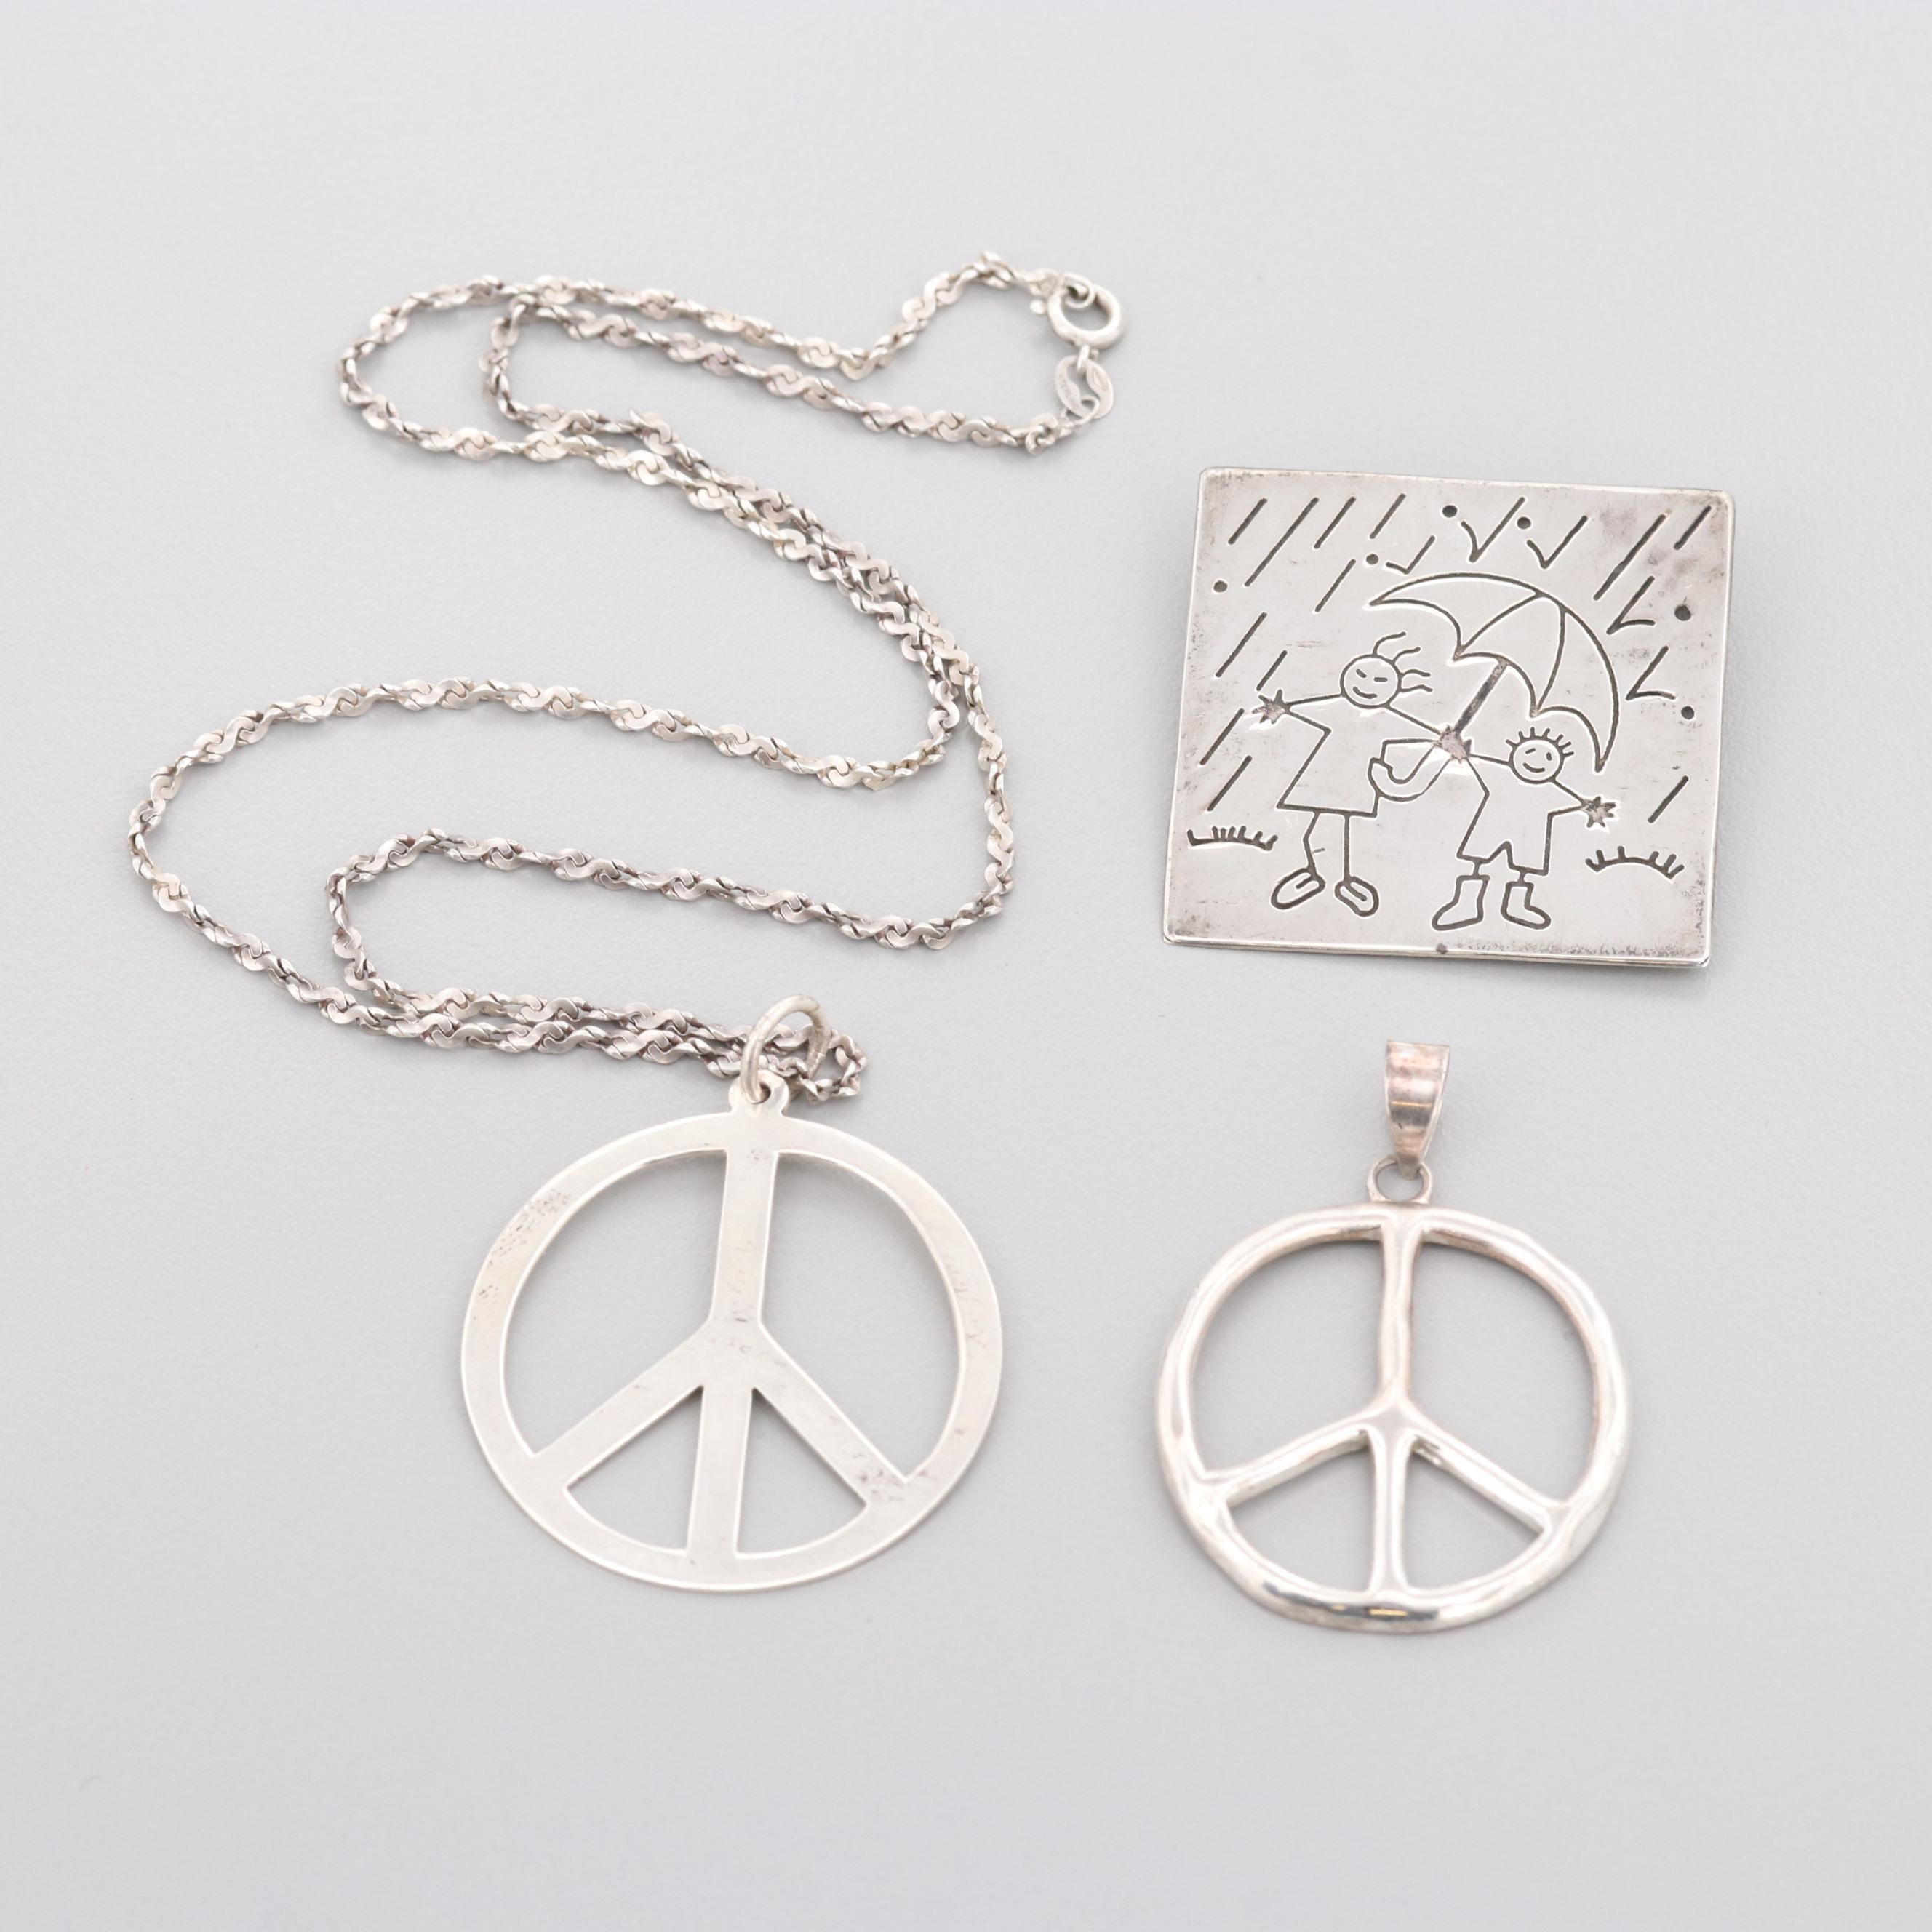 Vintage Style Sterling Silver Peace Pendant and Necklace with Rain Themed Brooch